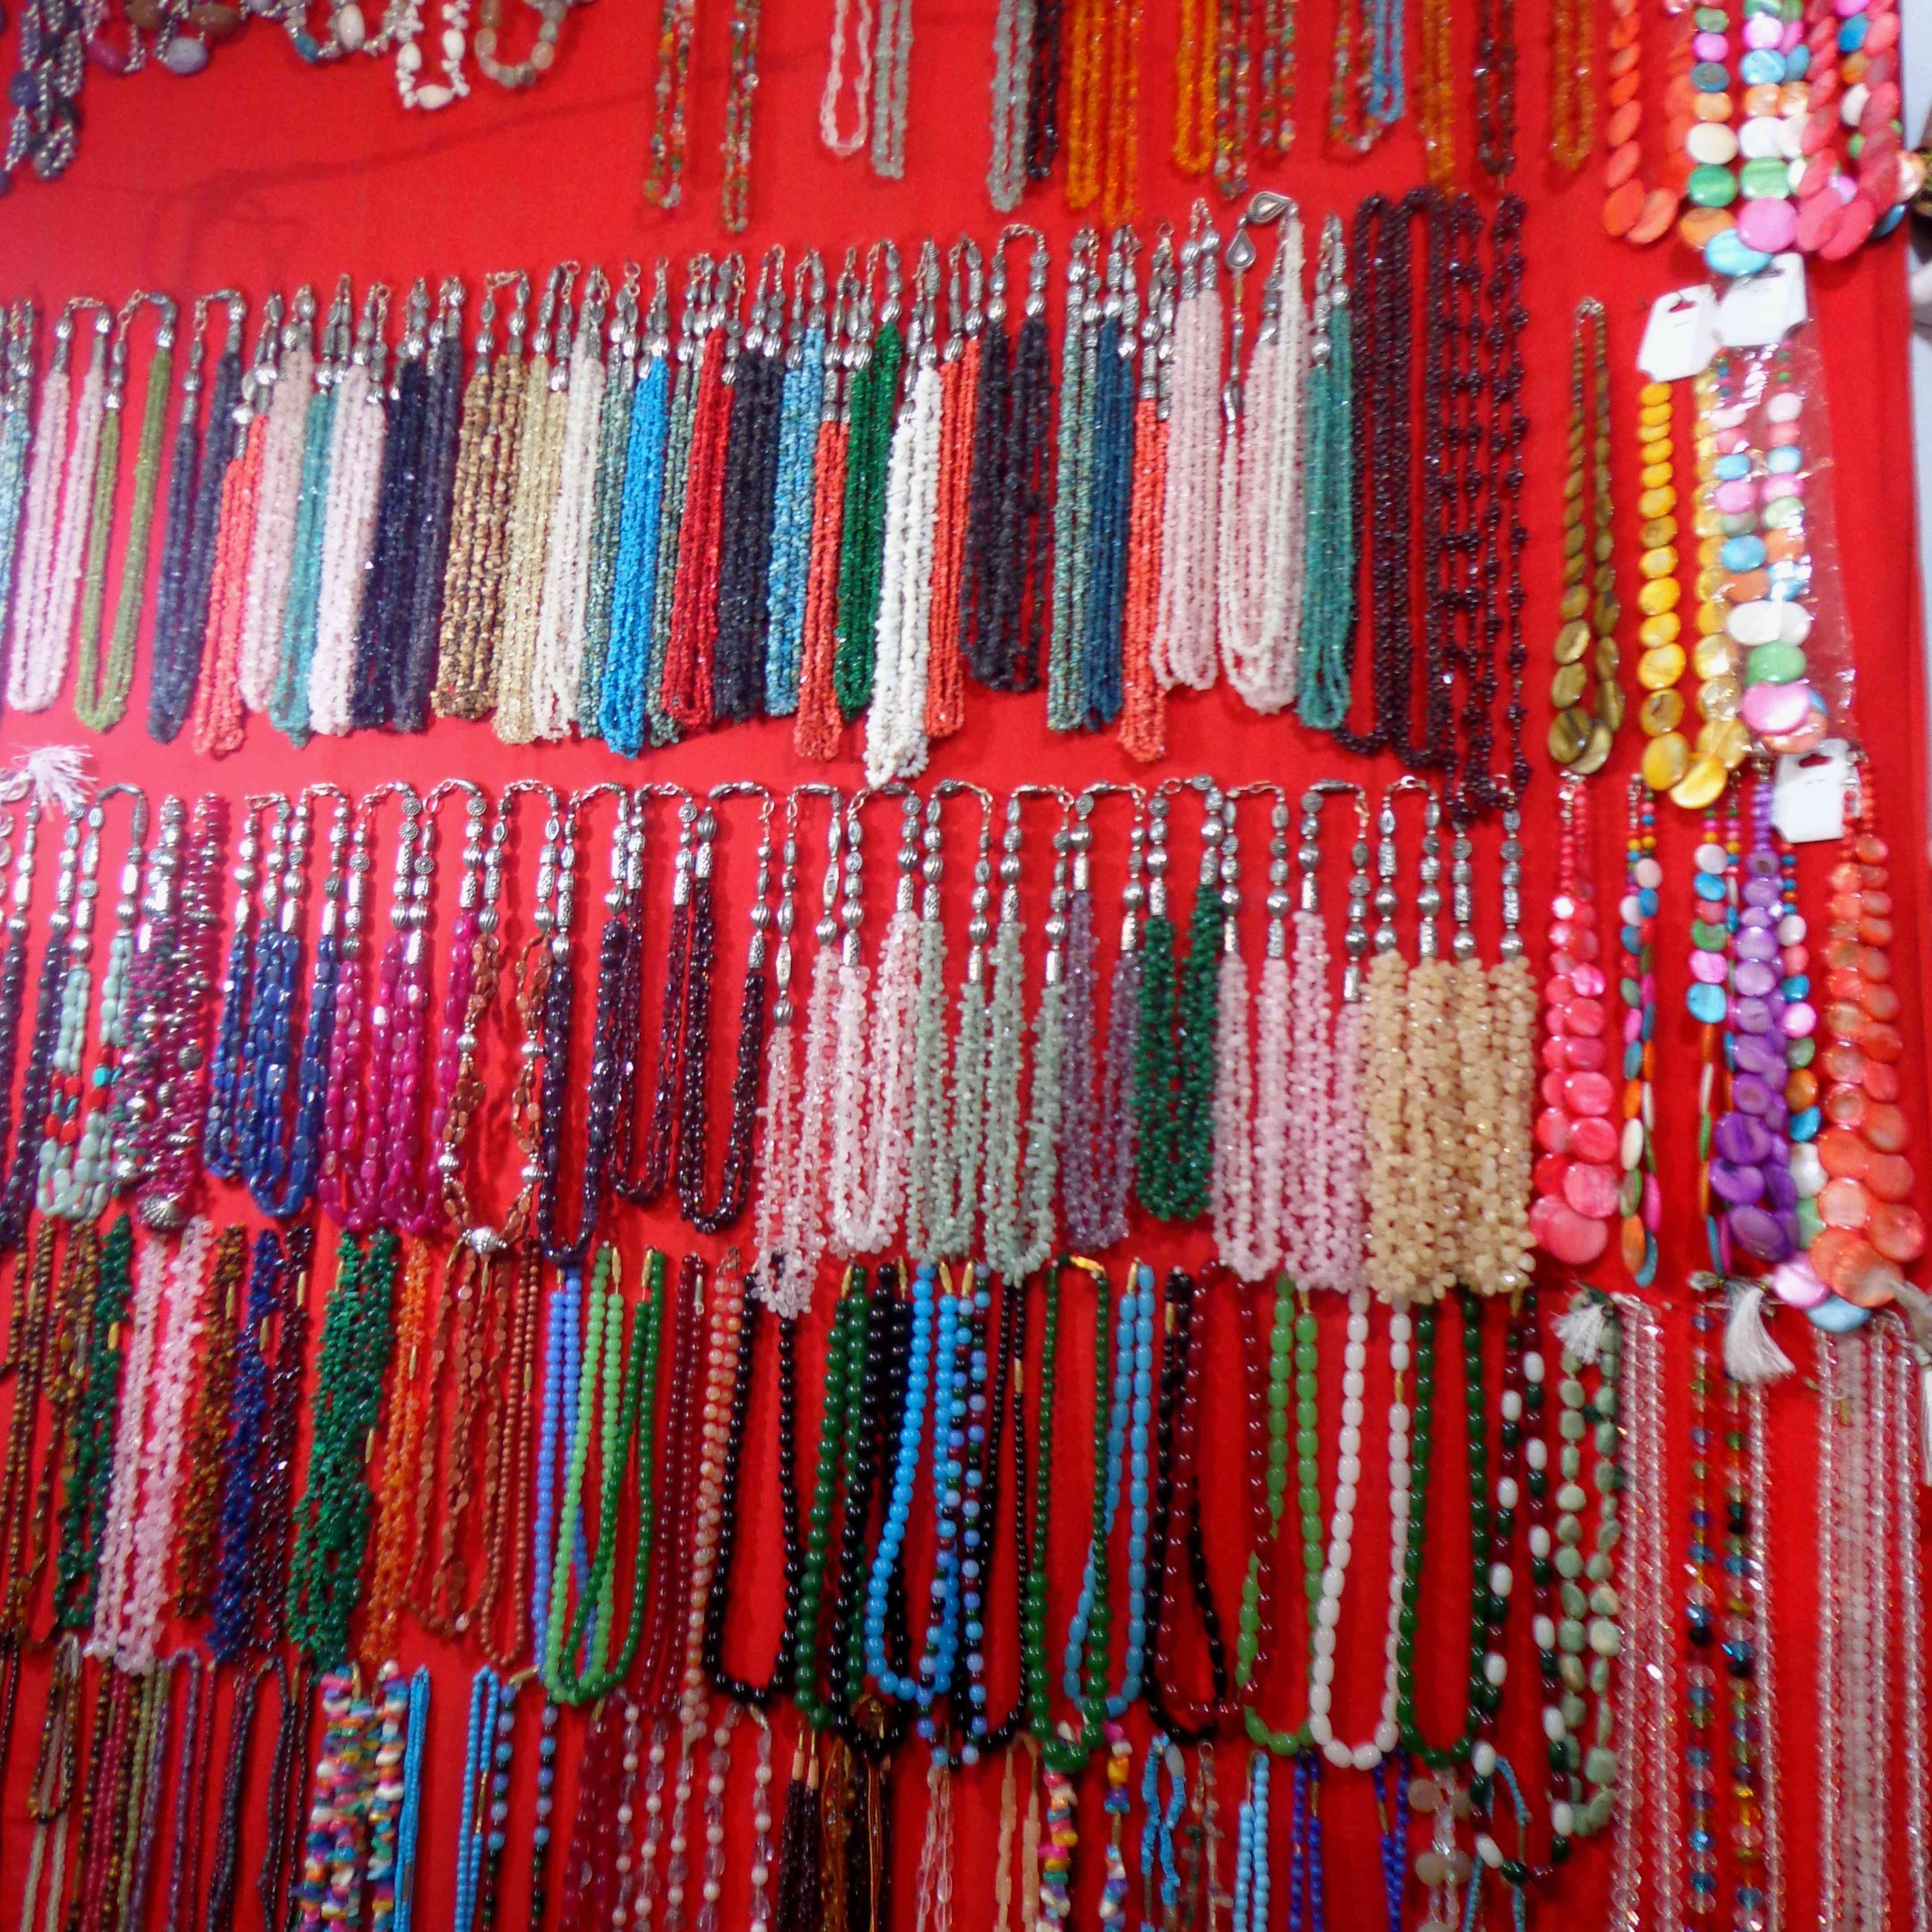 Strings of colorful beads